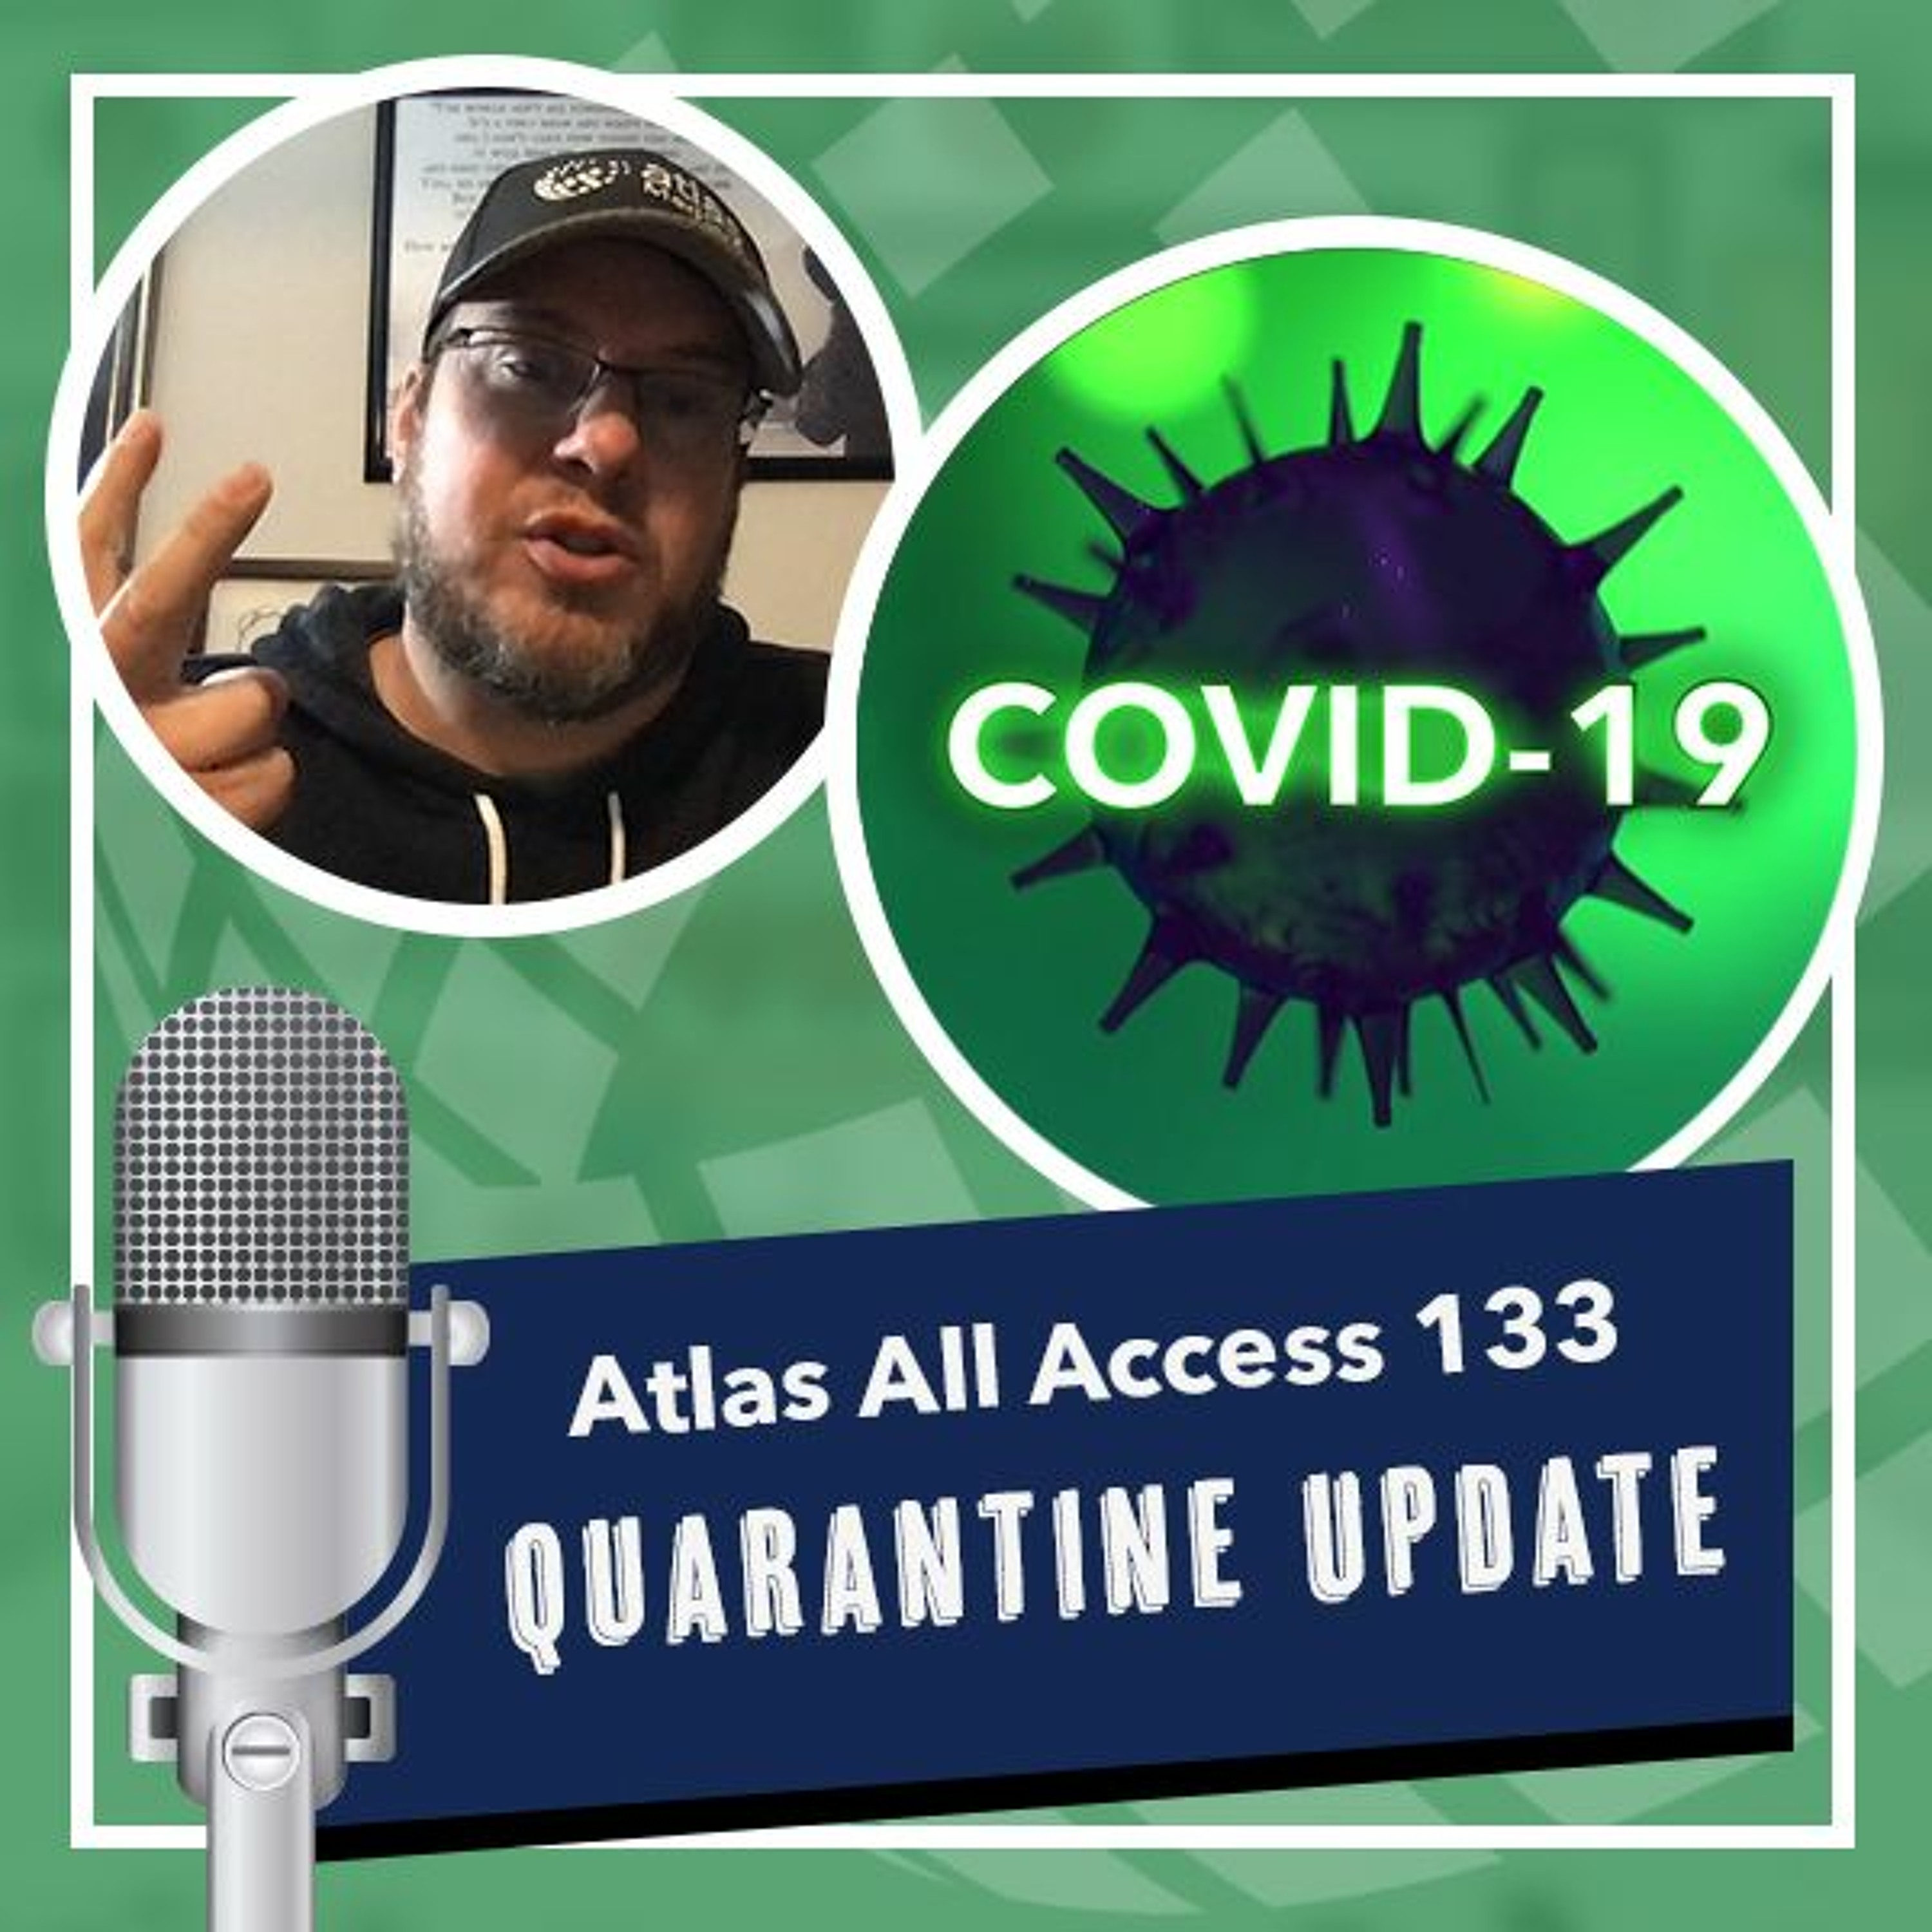 Quarantine update - how to quarantine from Covid - Atlas All Access 133